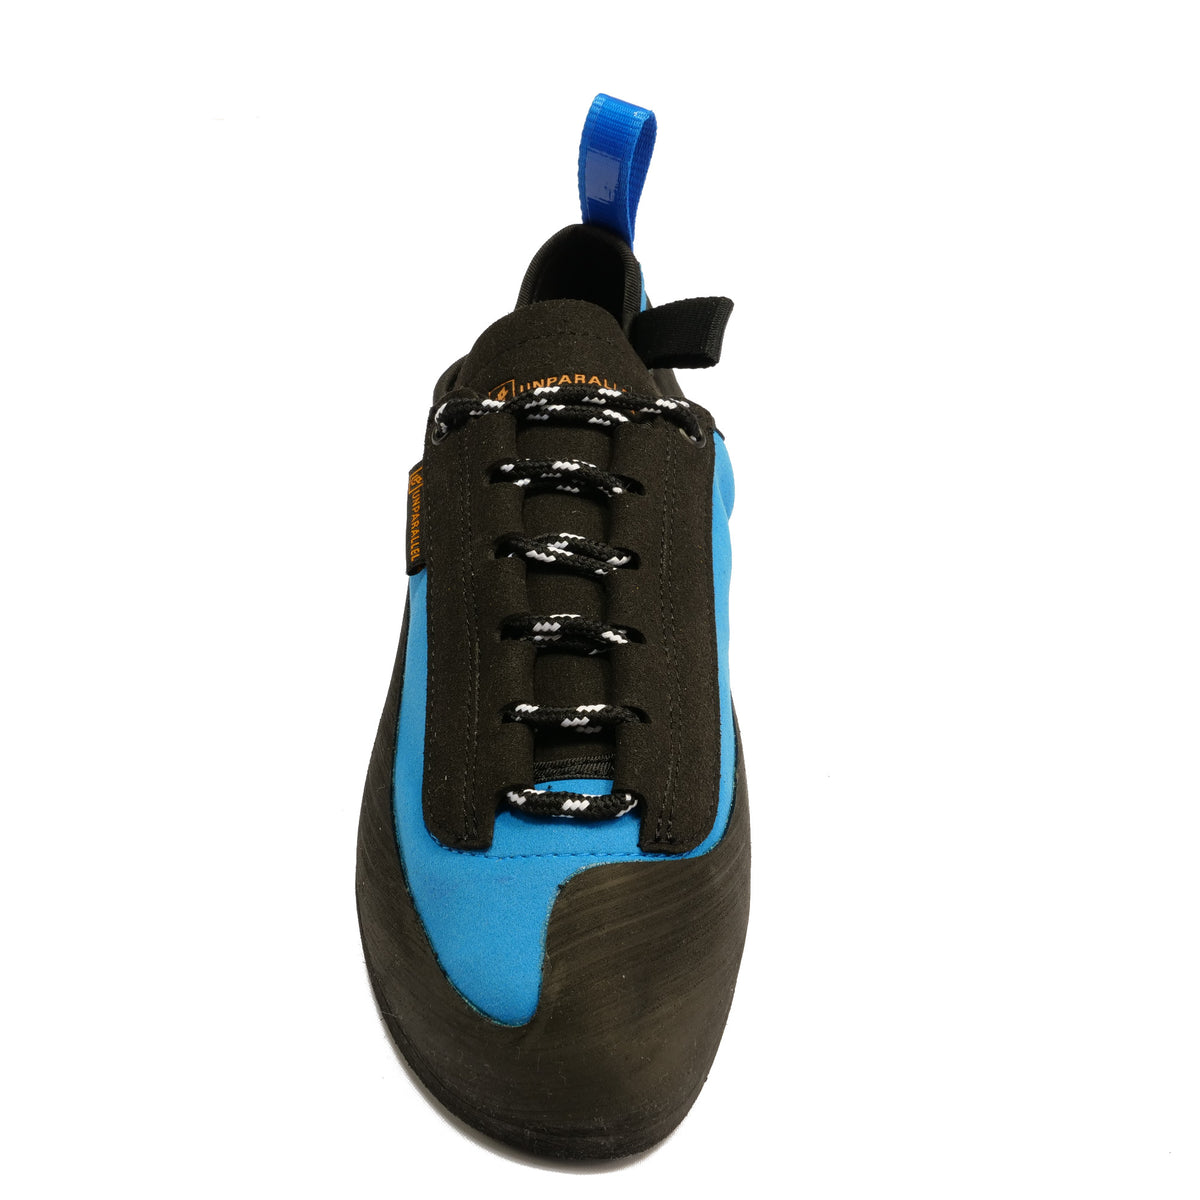 Tilted front view of the Unparallel Up Lace climbing shoe in Blue and black